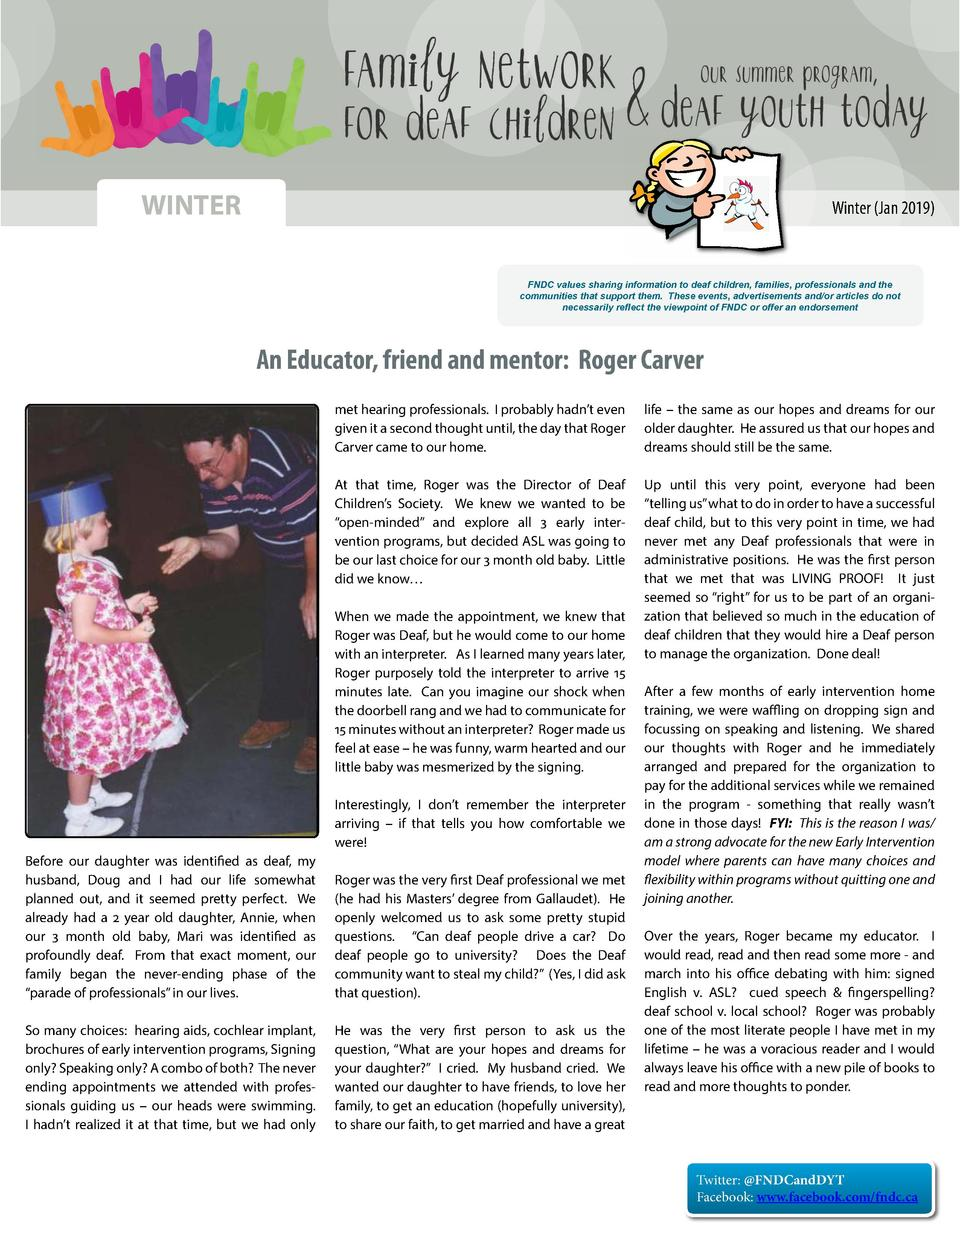 WINTER  Winter  Jan 2019   FNDC values sharing information to deaf children, families, professionals and the communities t...